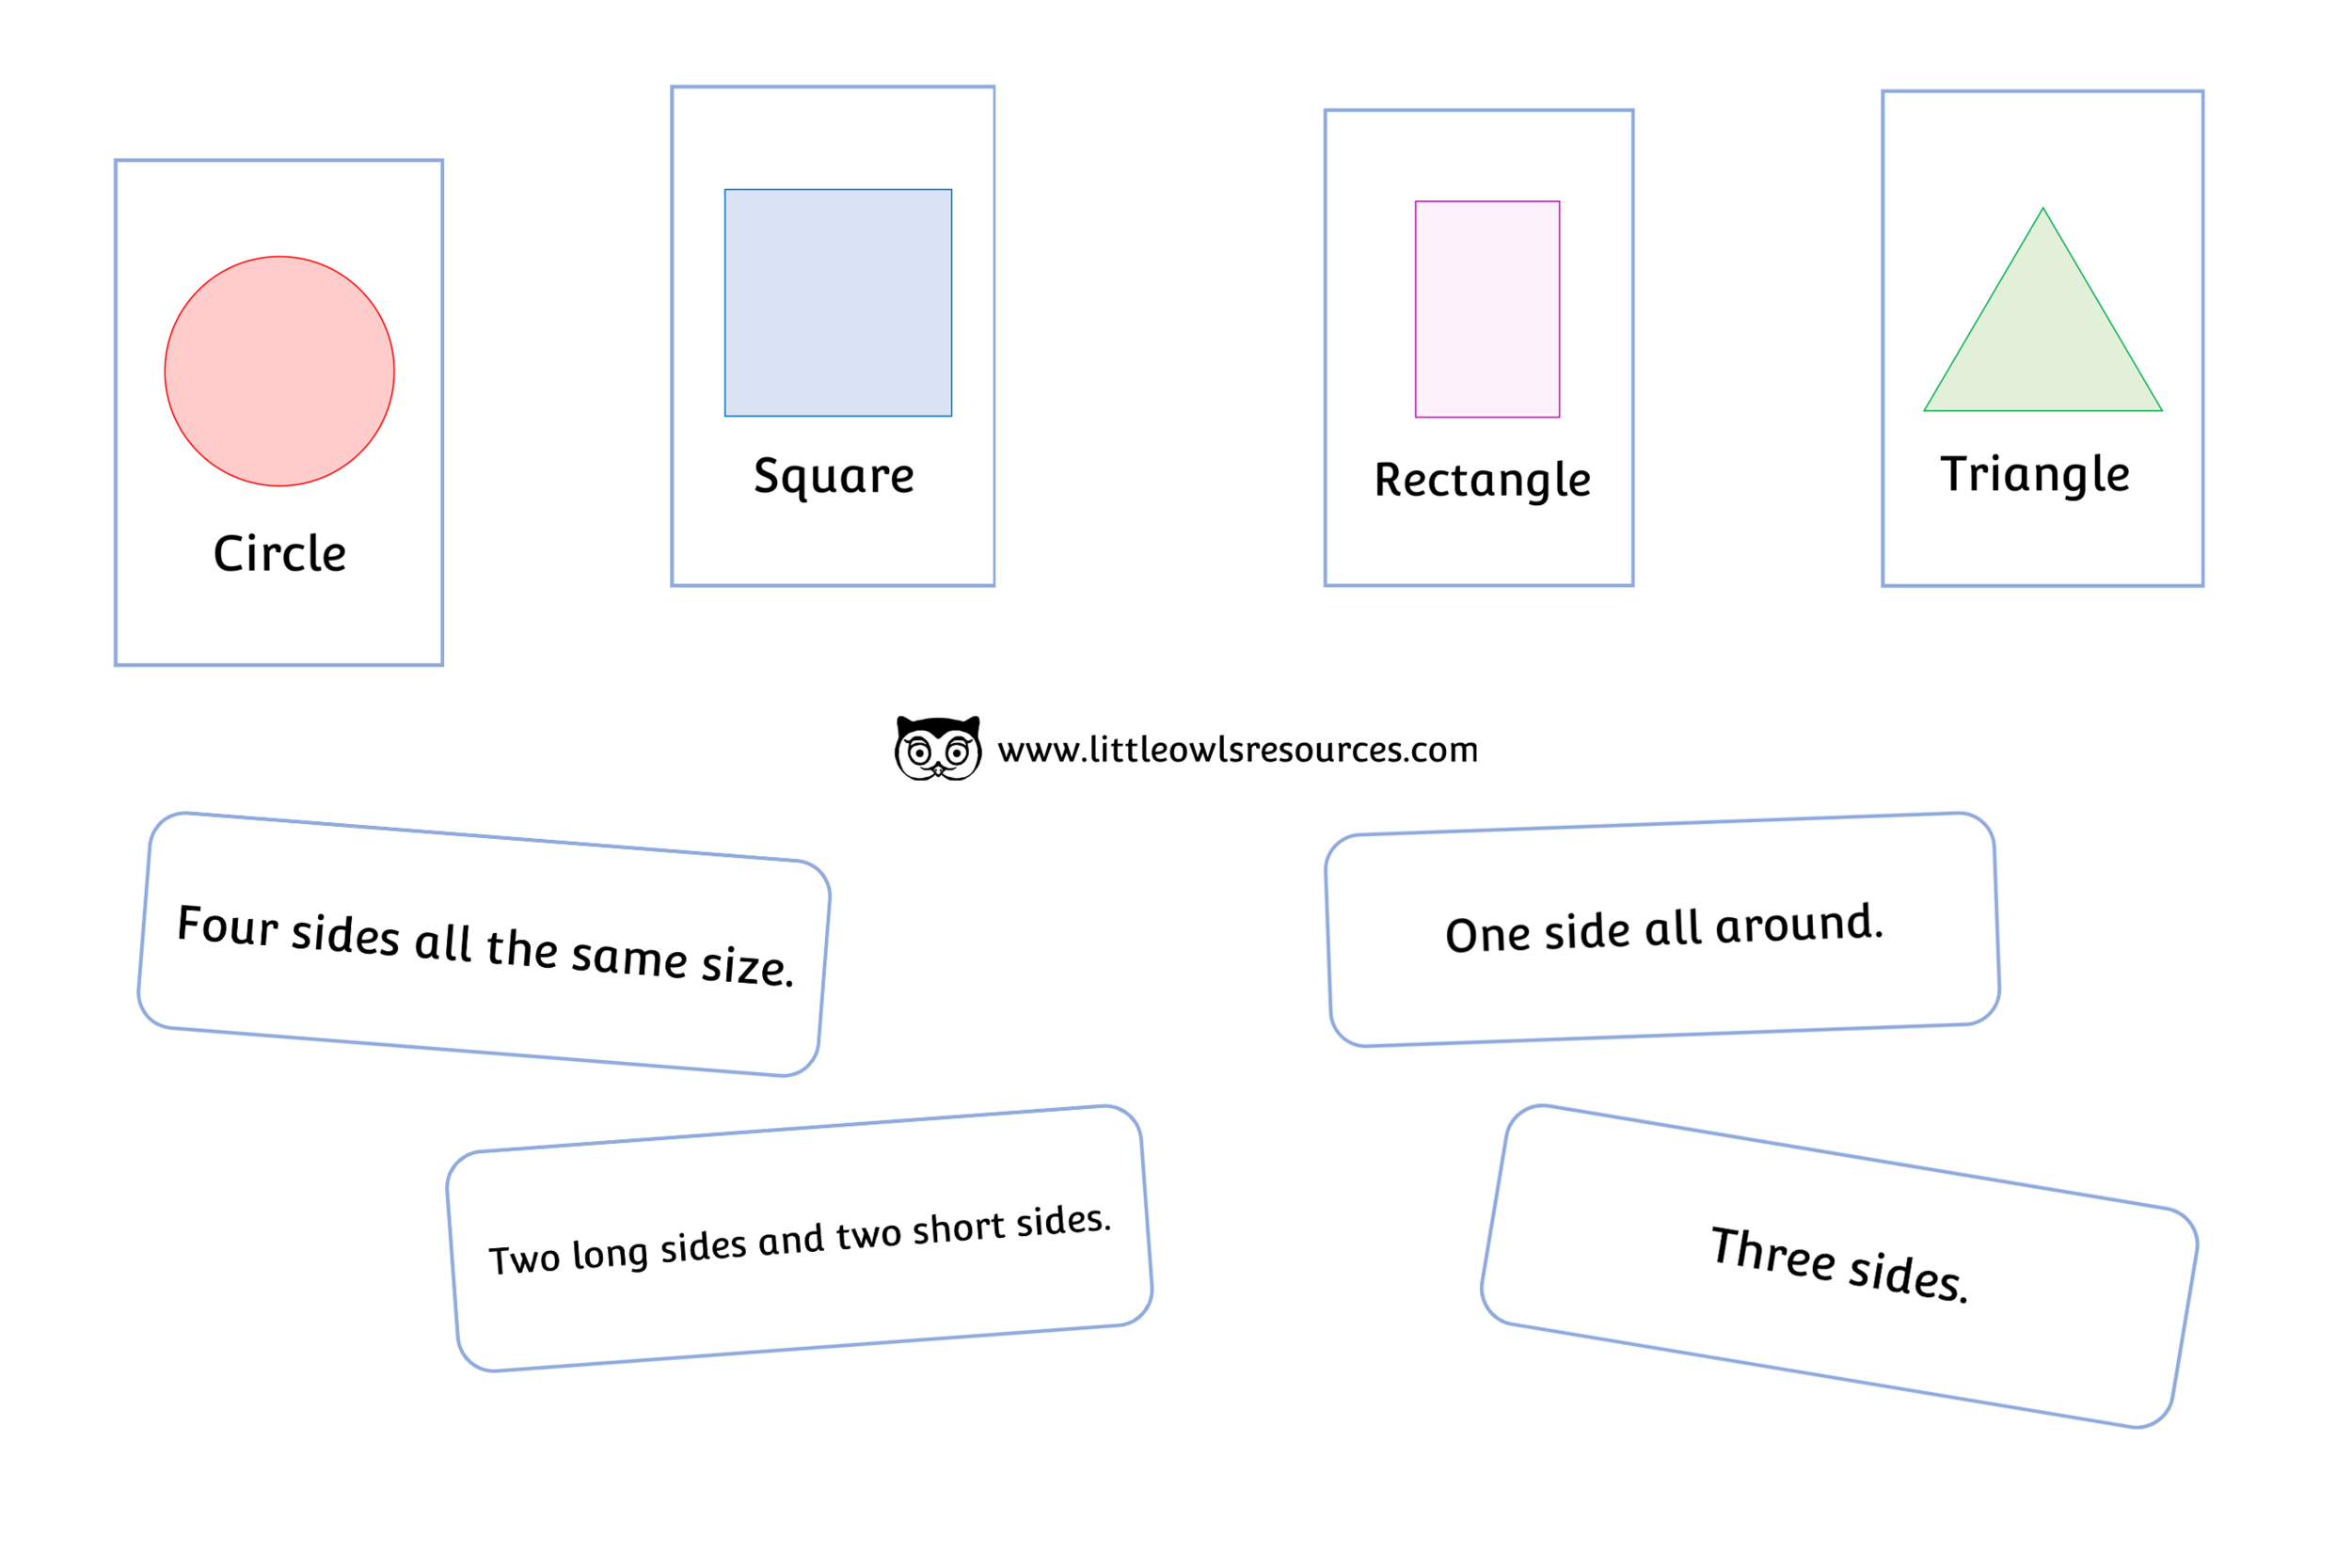 2D Shape Description Matching Cards and Statements Game